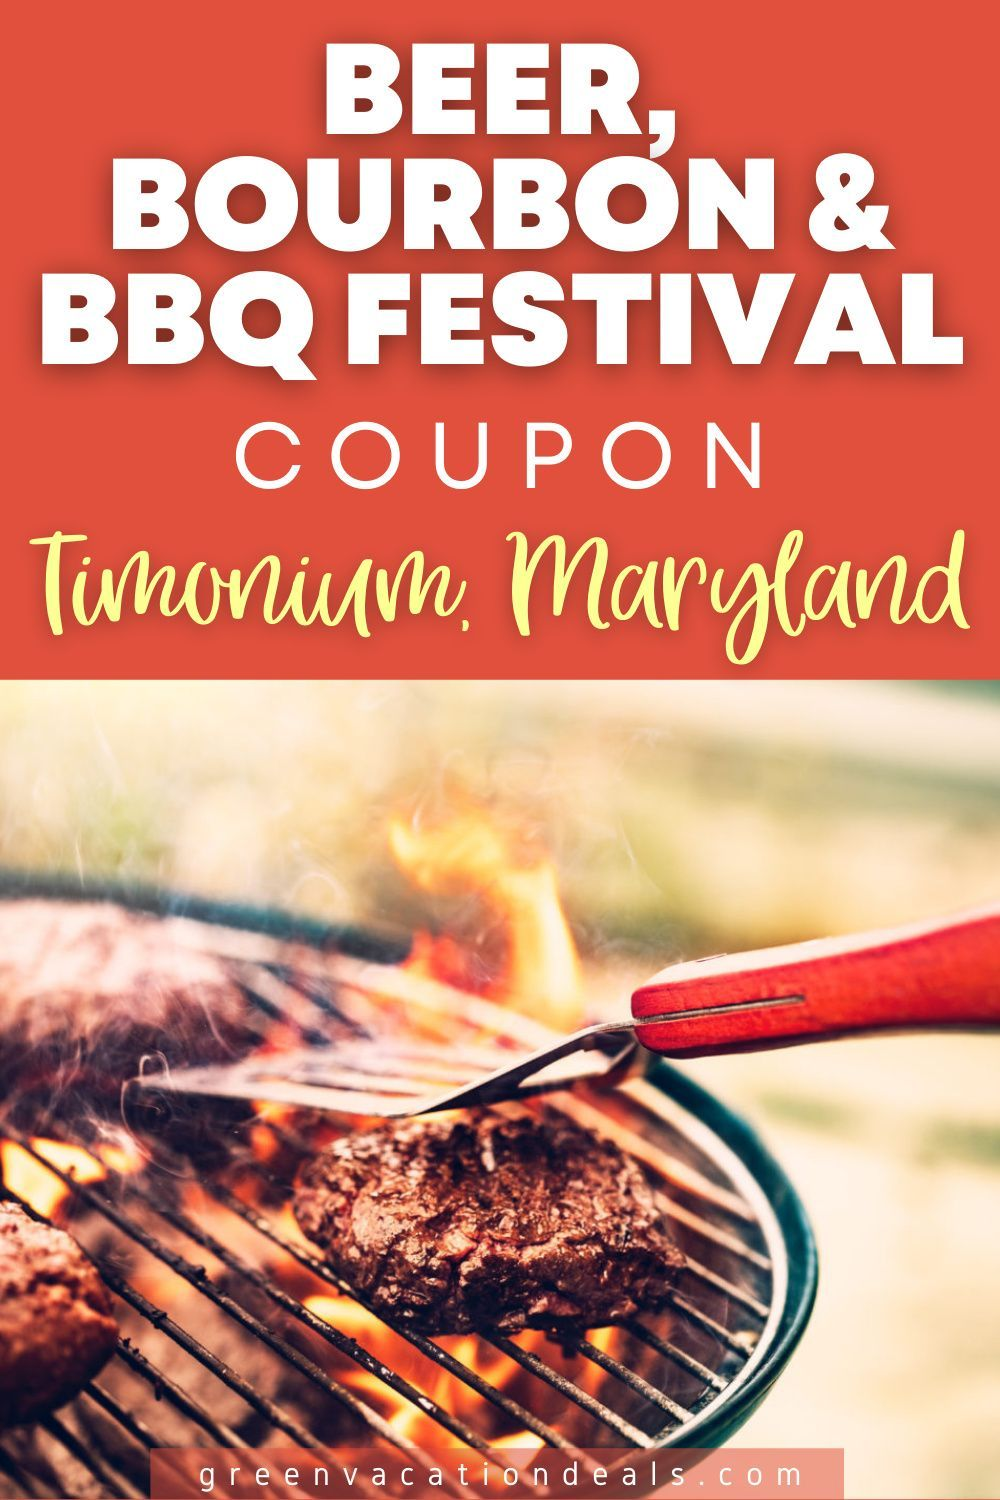 Coupons For Beer Bourbon Bbq Festival In Timonium Maryland Green Vacation Deals In 2020 Bbq Festival Beer Bourbon Bbq Beer Festival